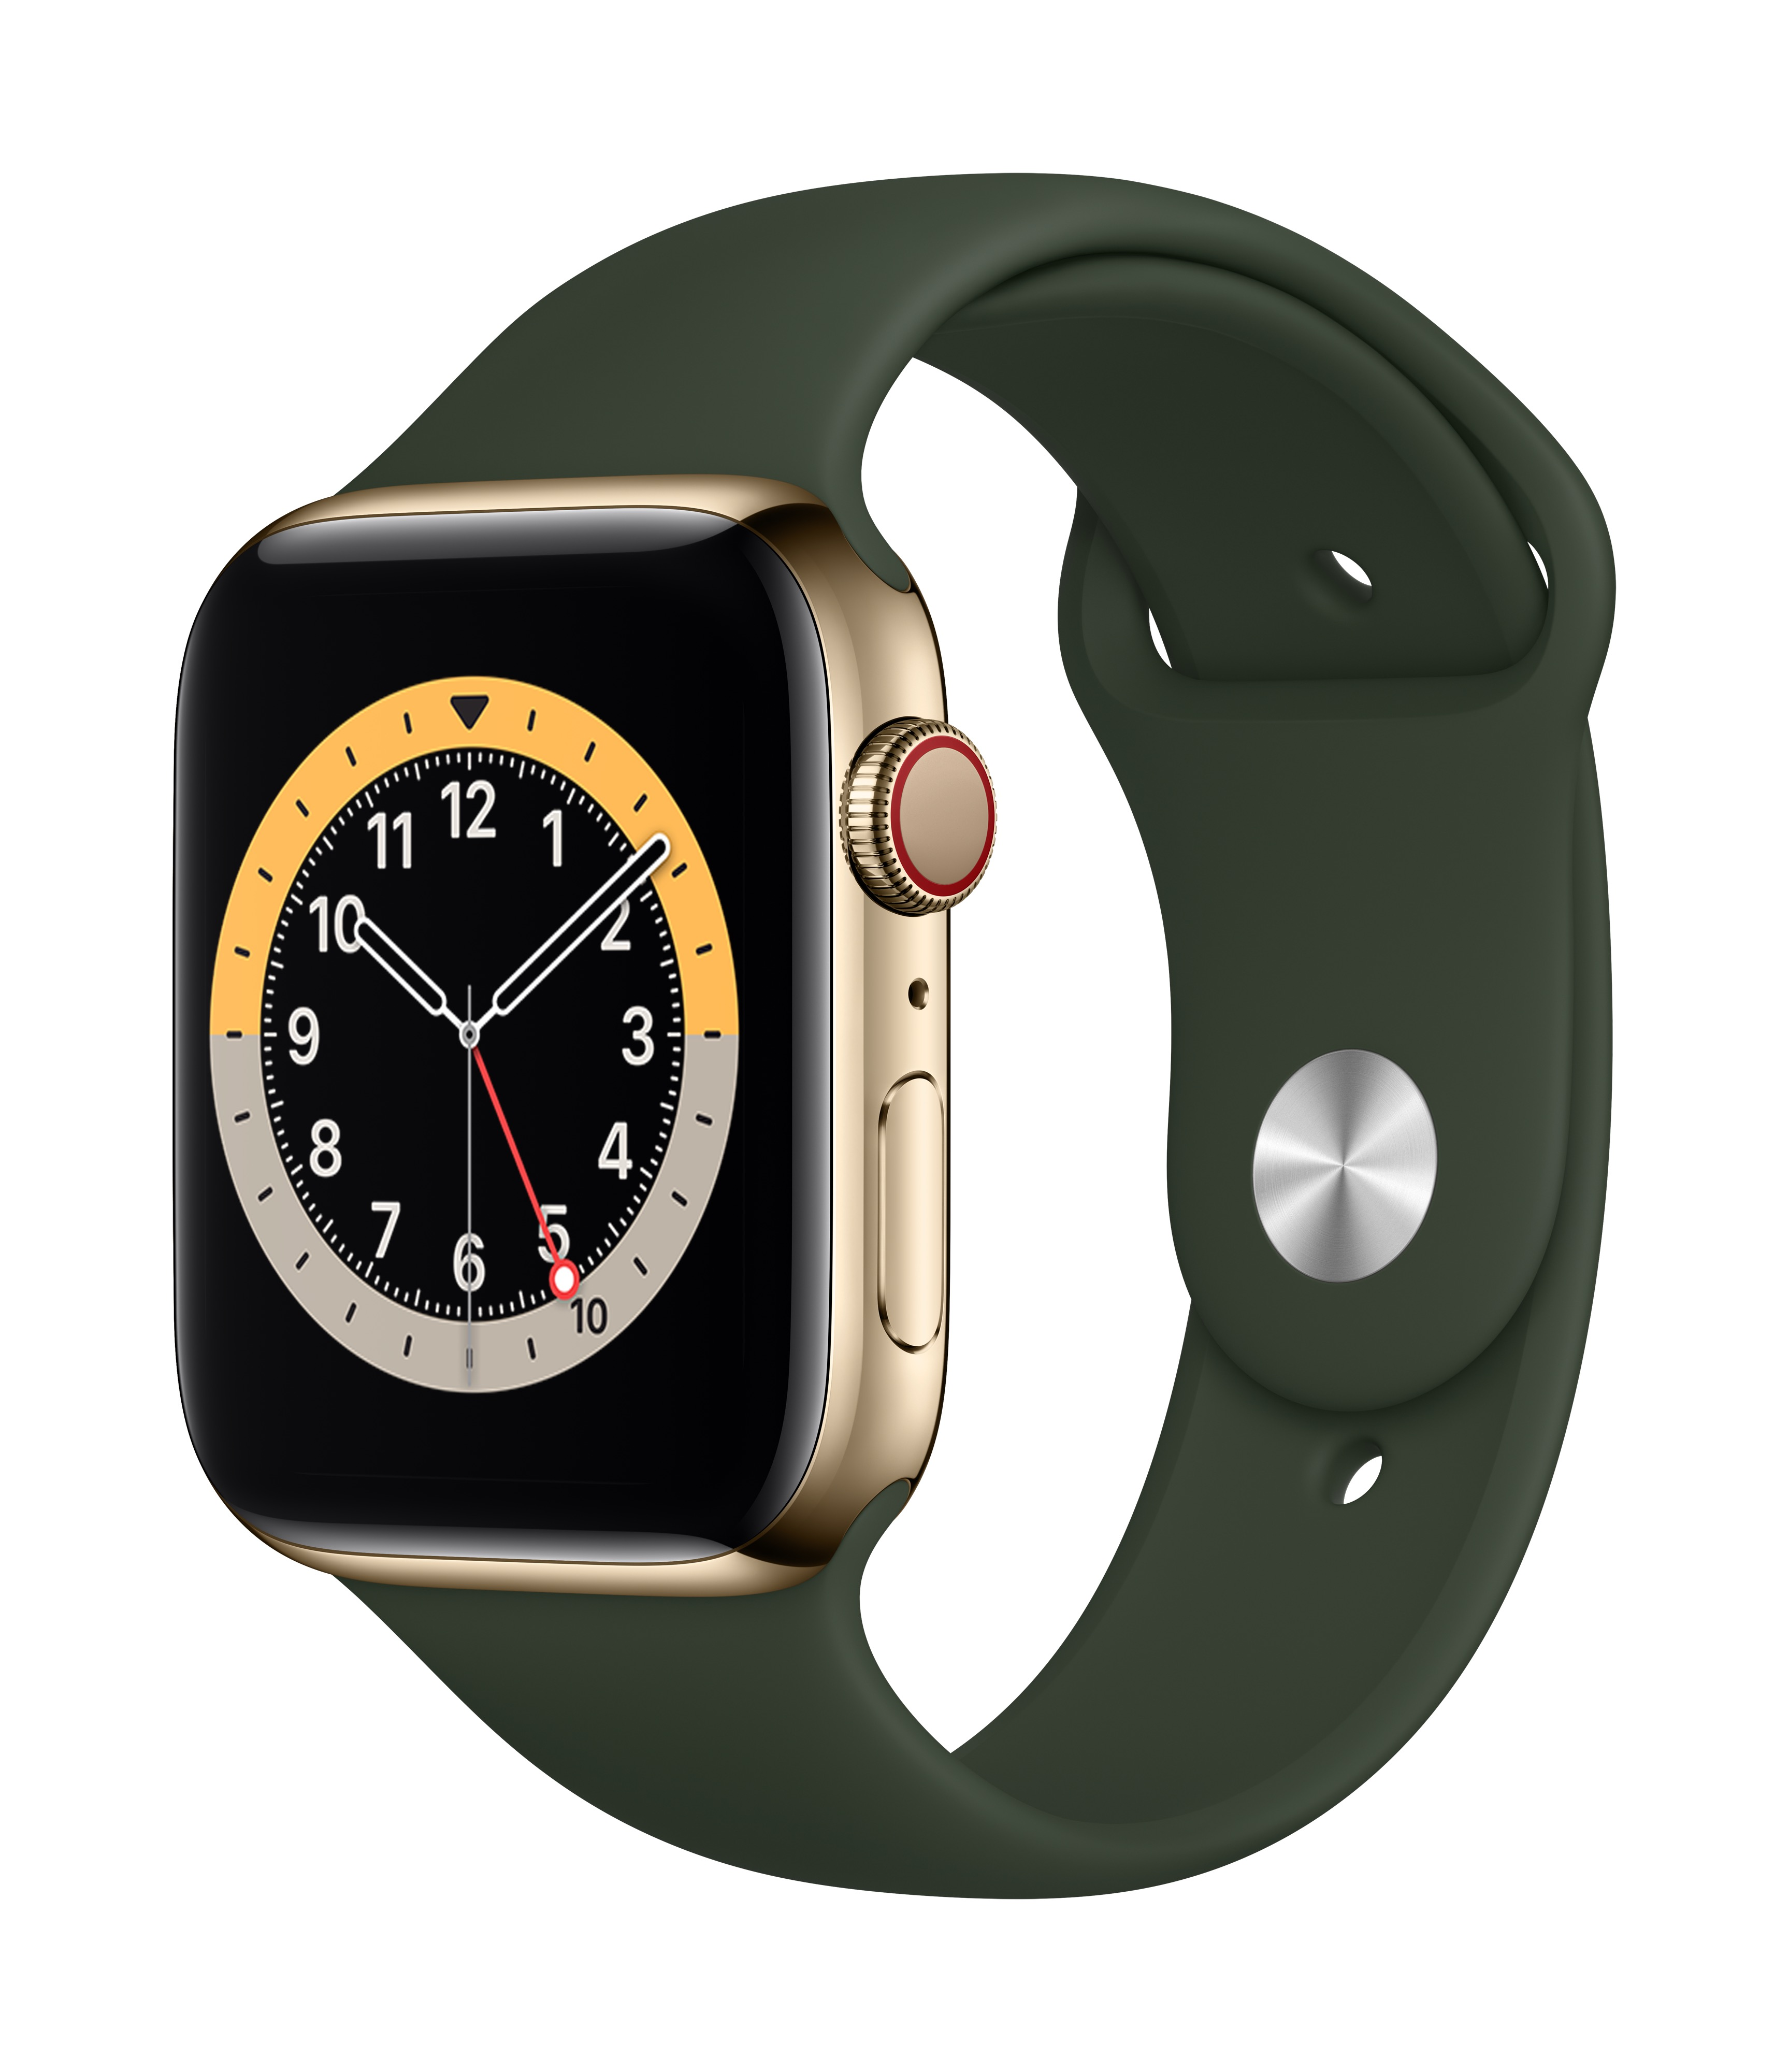 Apple_Watch_Series_6_Cellular_44mm_Gold_Stainless_Cyprus_Green_Sport_Band_34R_Screen__USEN